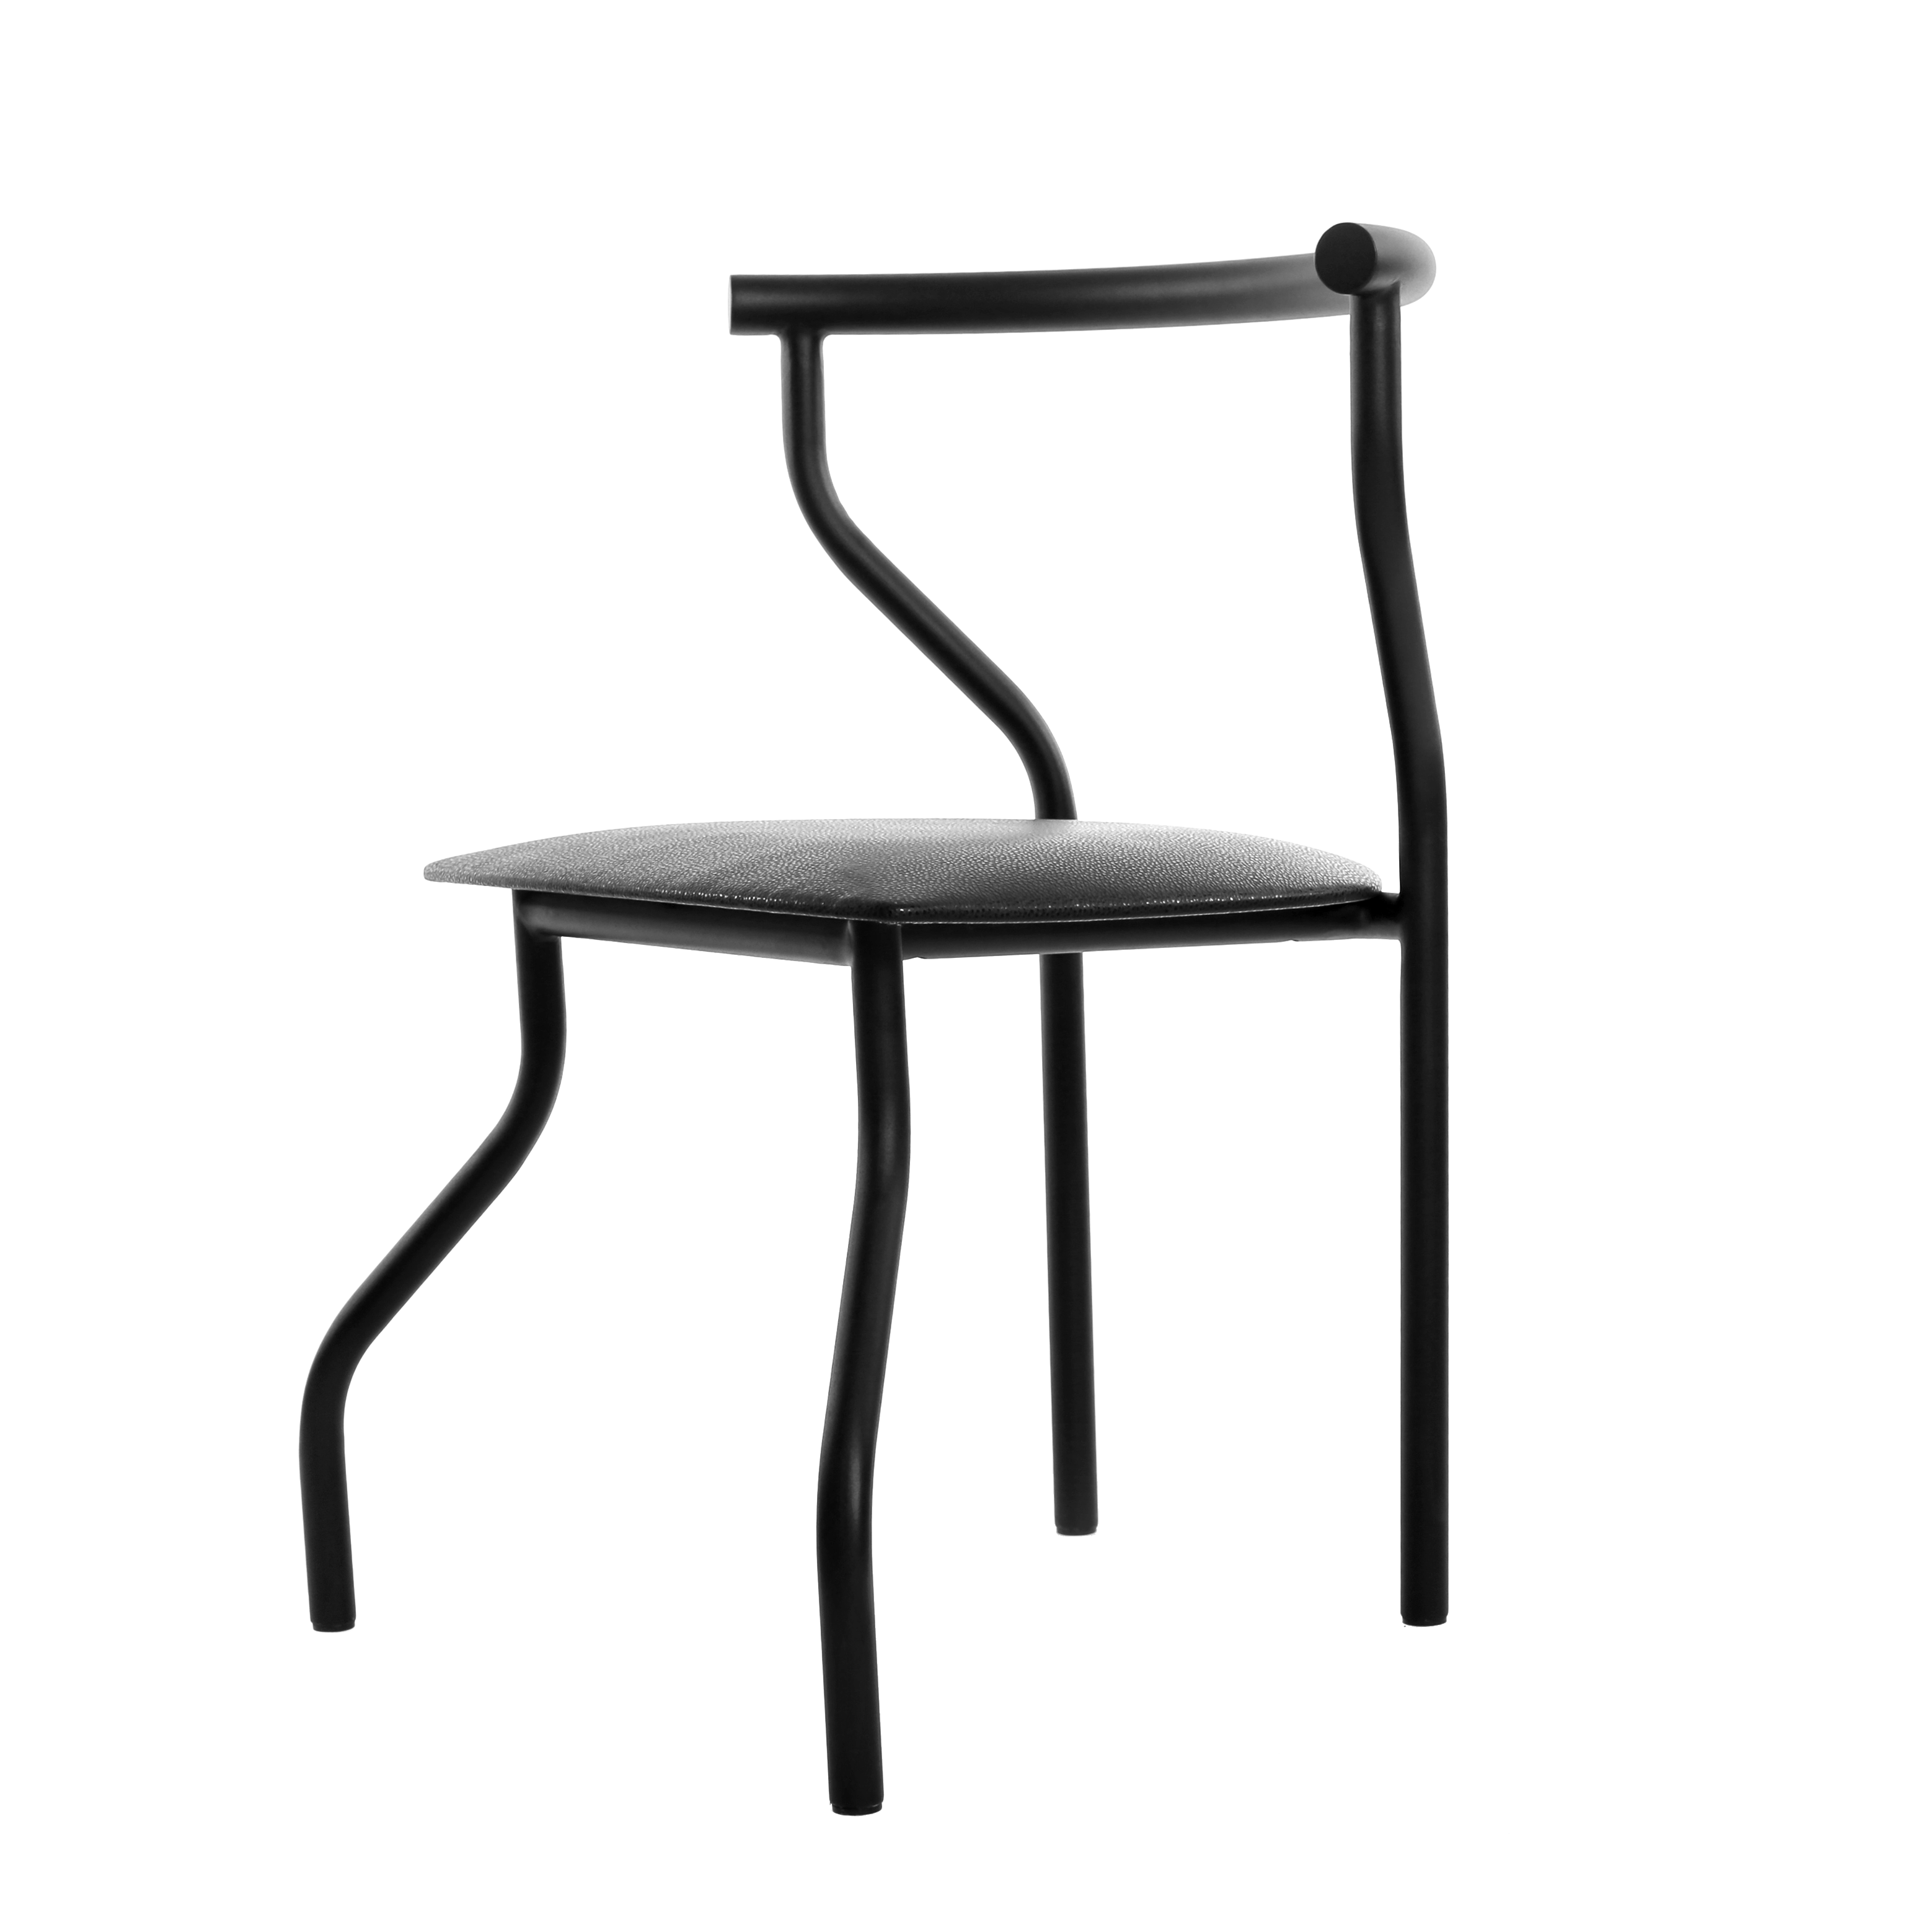 Pho chair